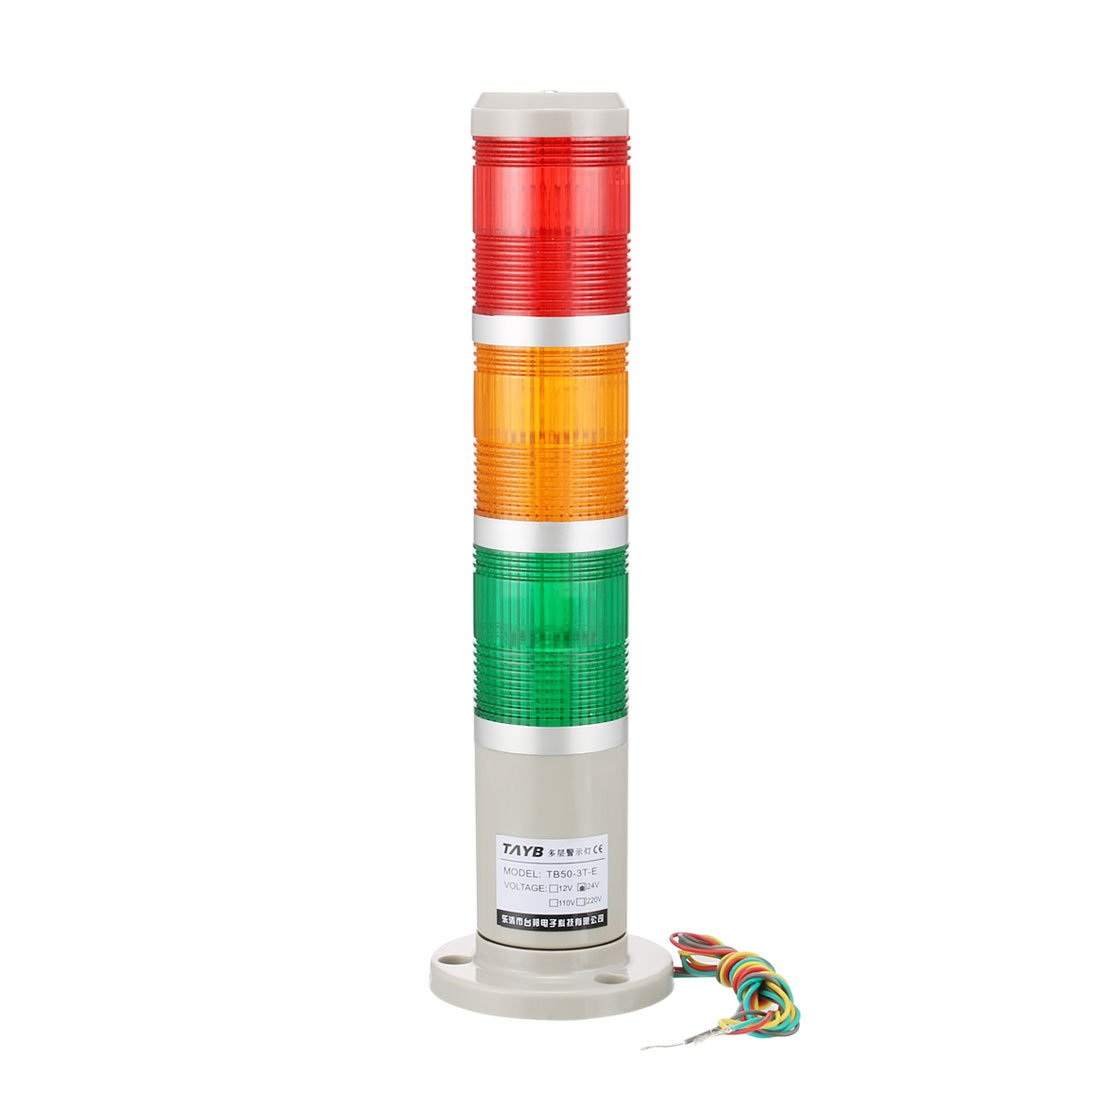 uxcell Warning Light Bulb Bright Industrial Signal Alarm Lamp DC24V Red Green Yellow TB50-3T-E